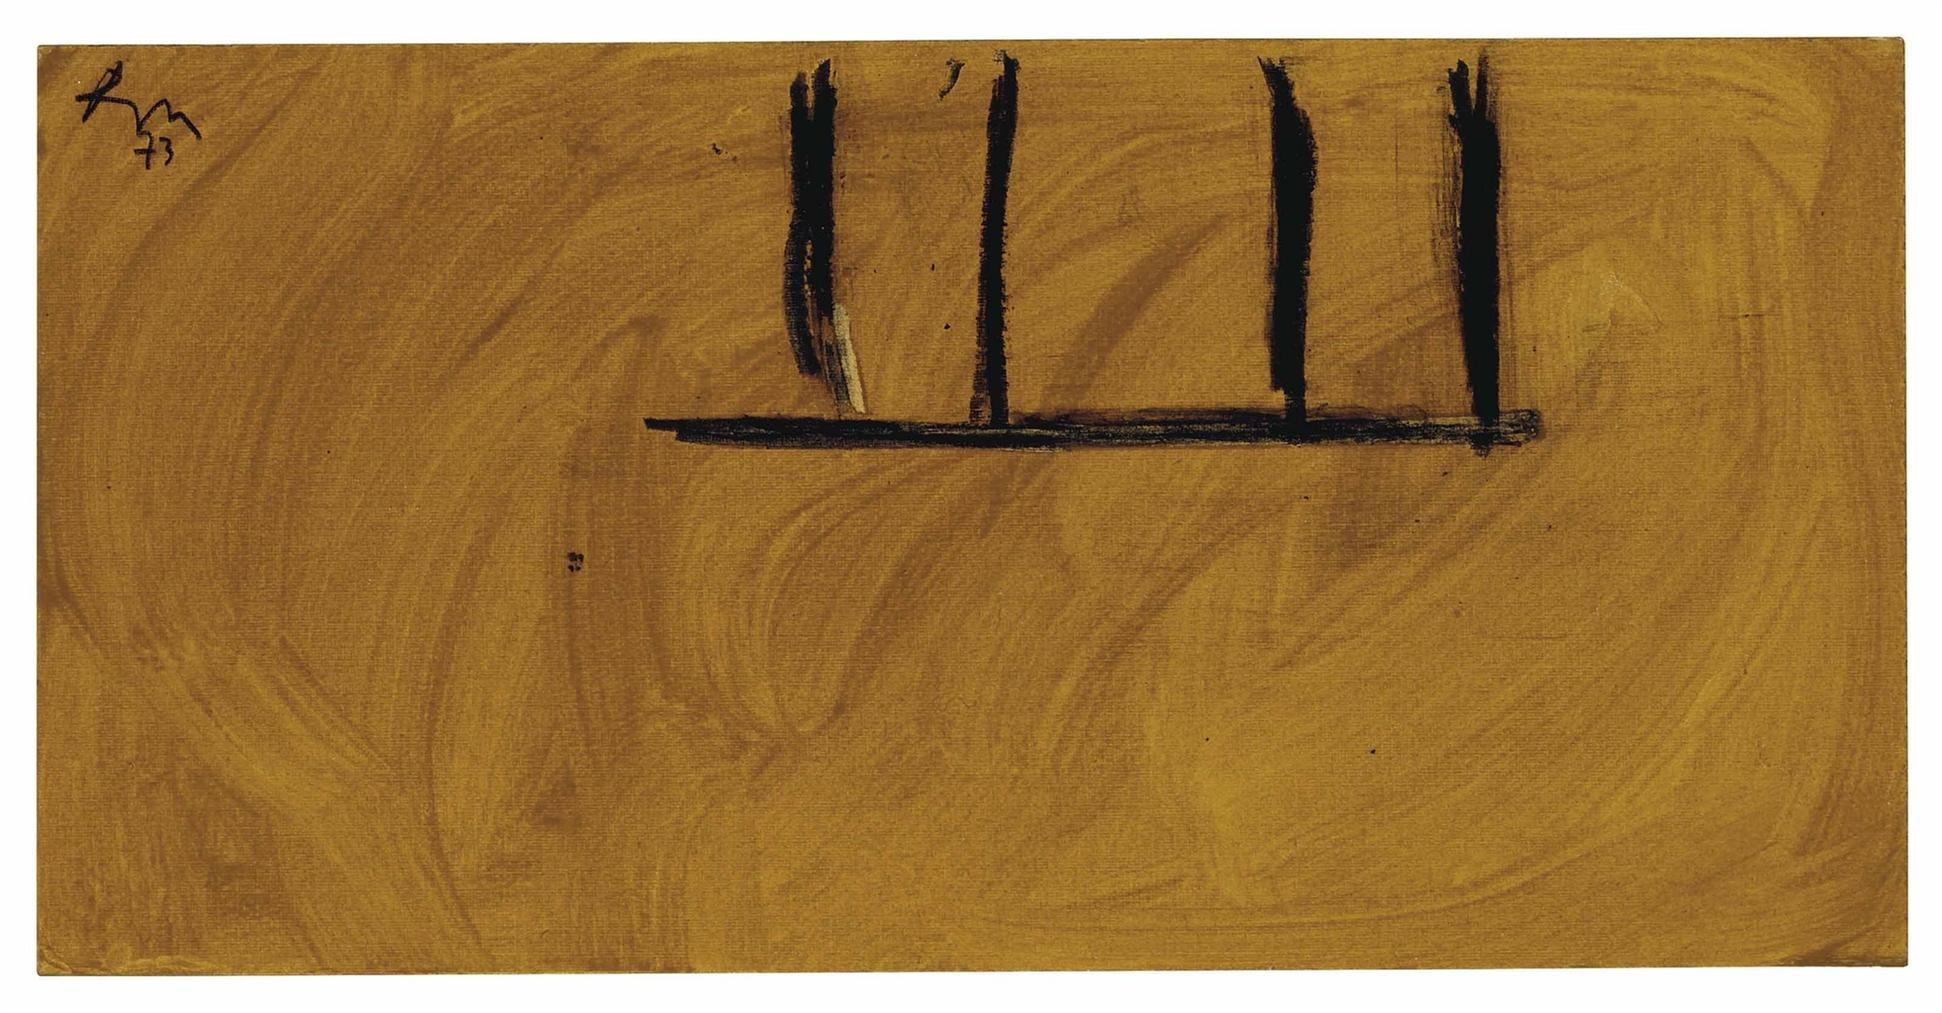 Robert Motherwell-Untitled (Ochre And Black)-1973